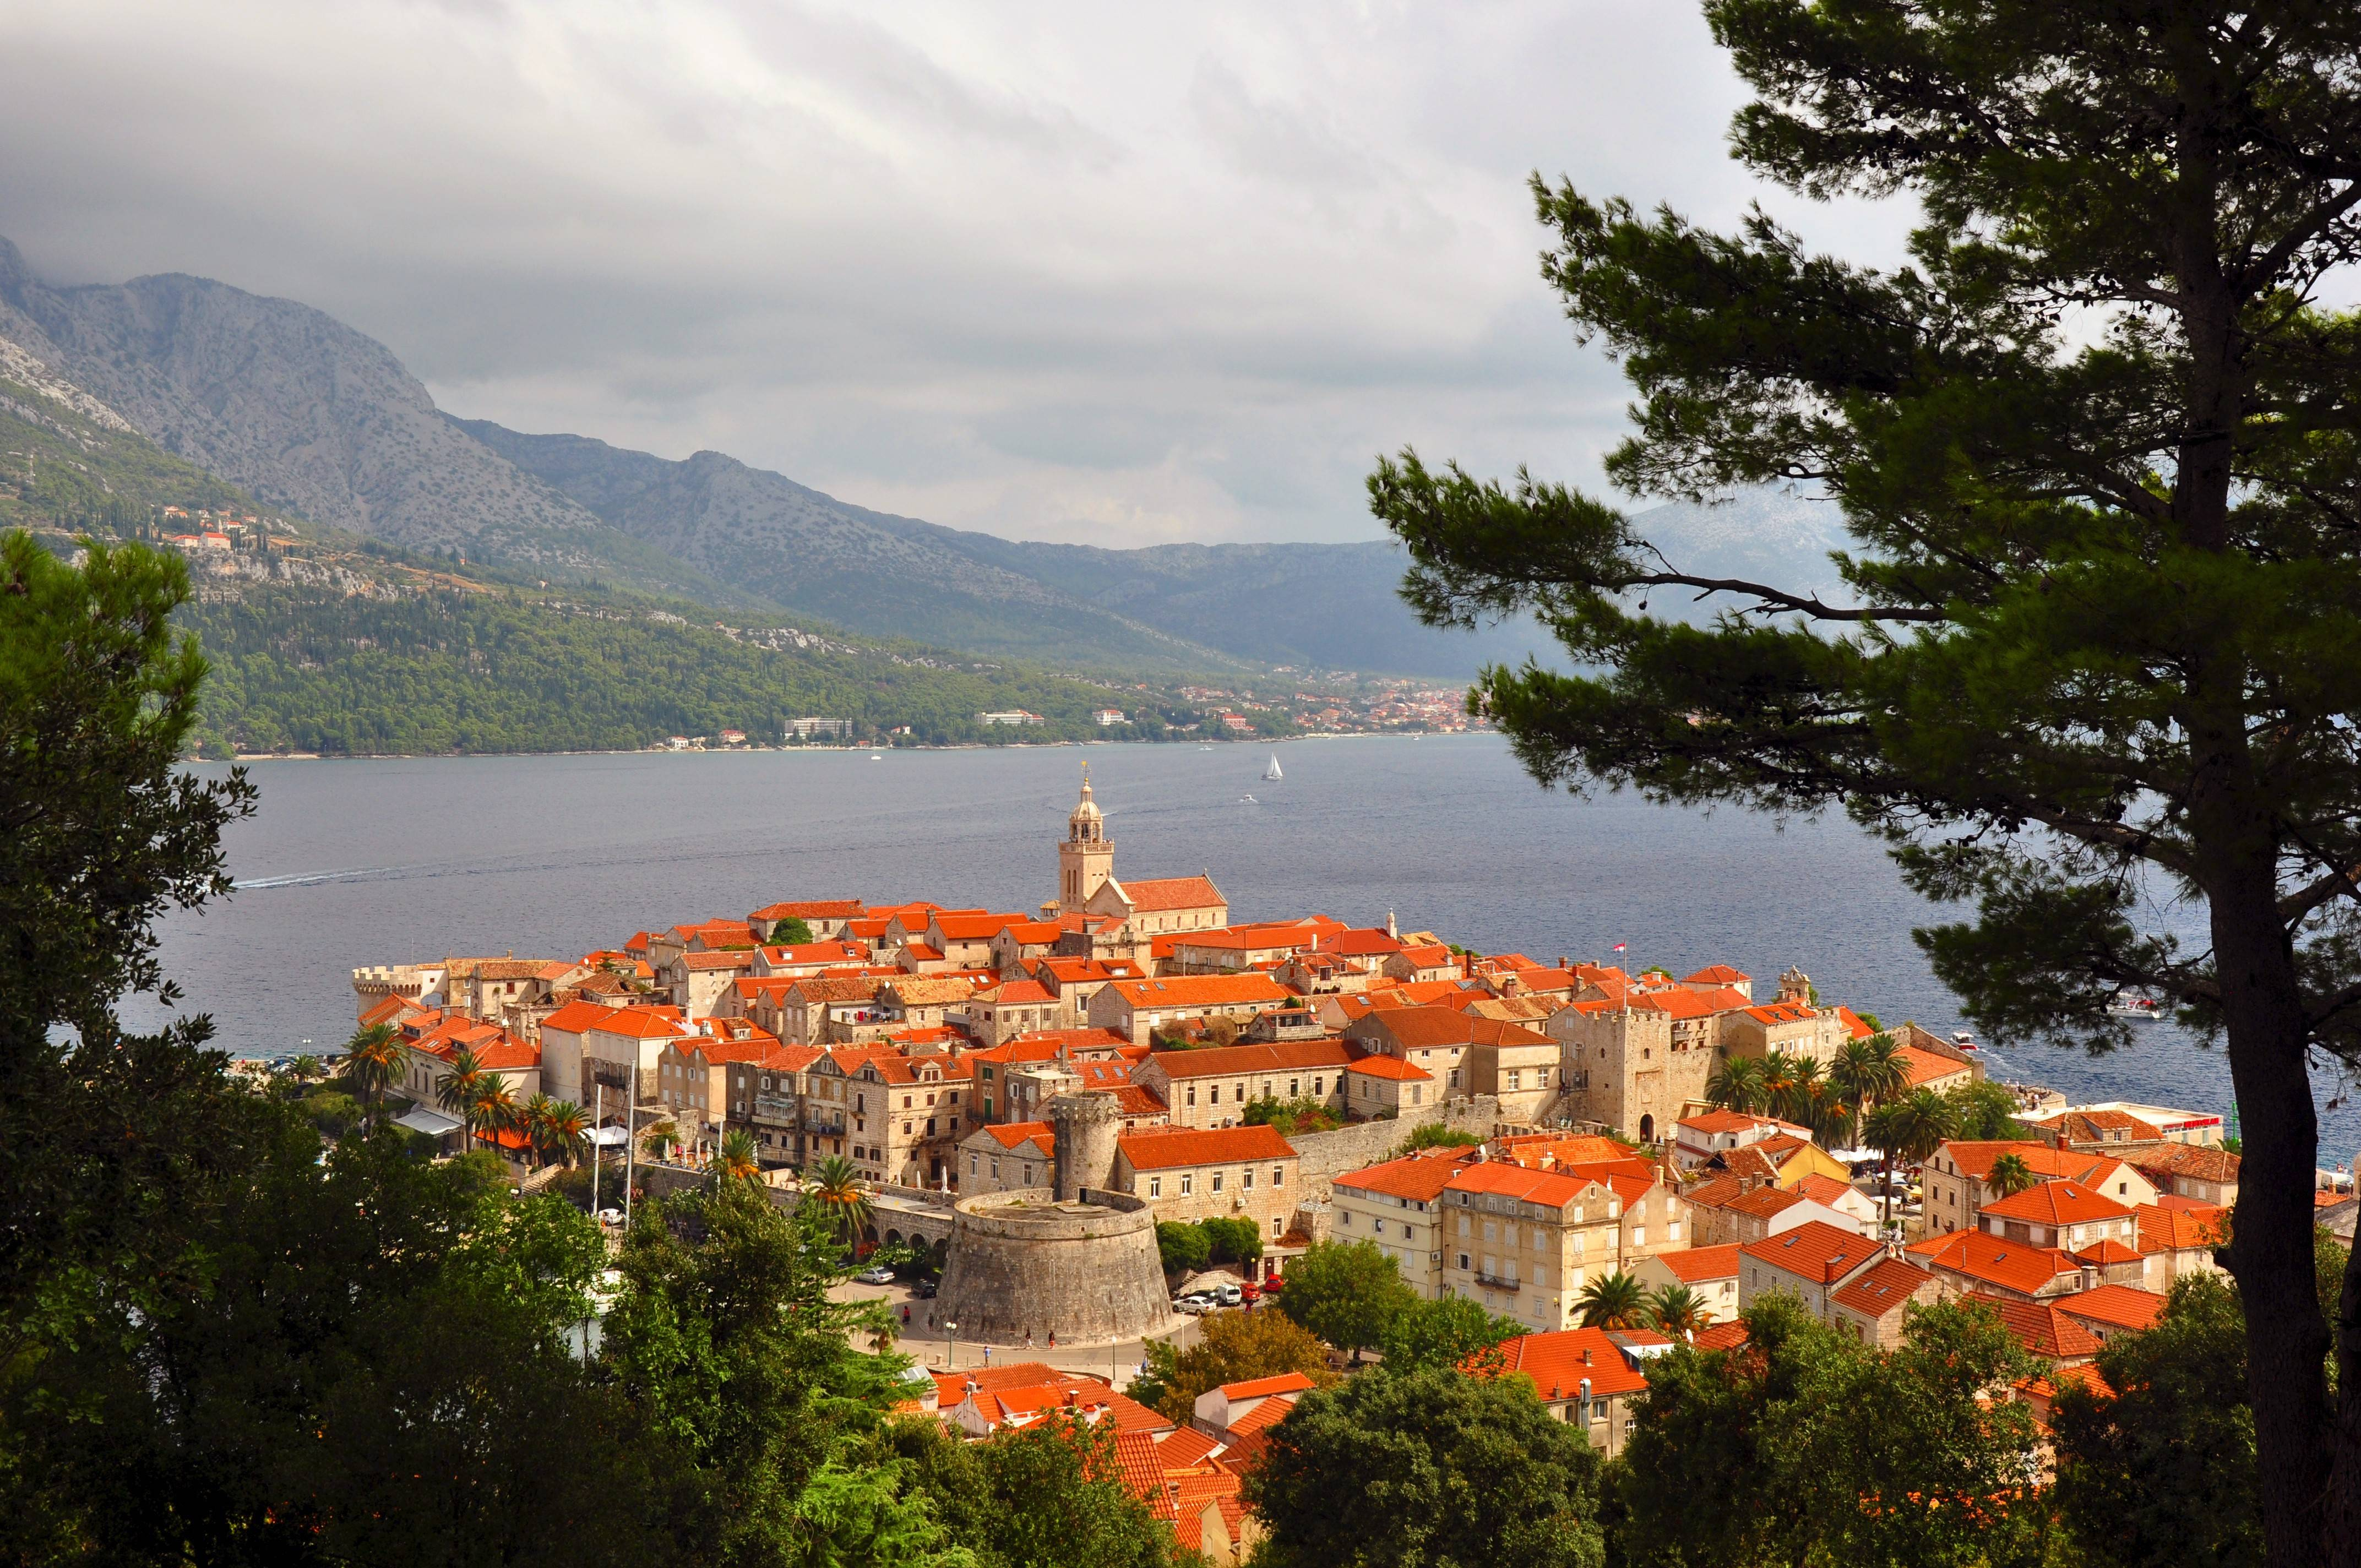 The walled old town of Korcula rises from an oval peninsula on Korcula Island in Croatia.